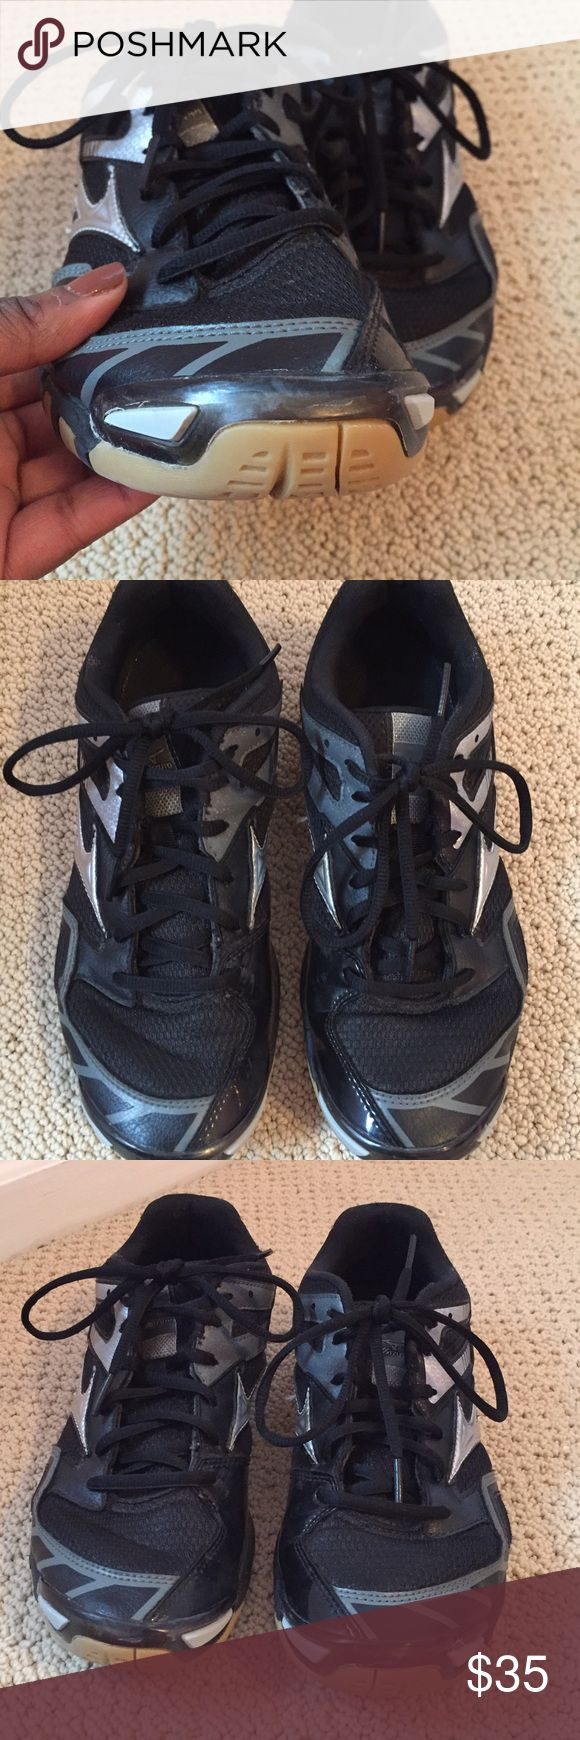 Mizuno volleyball shoes Volleyball shoes worn for two seasons, in good condition, no holes or tears, only some scuff marks near the toes. Mizuno Shoes Athletic Shoes